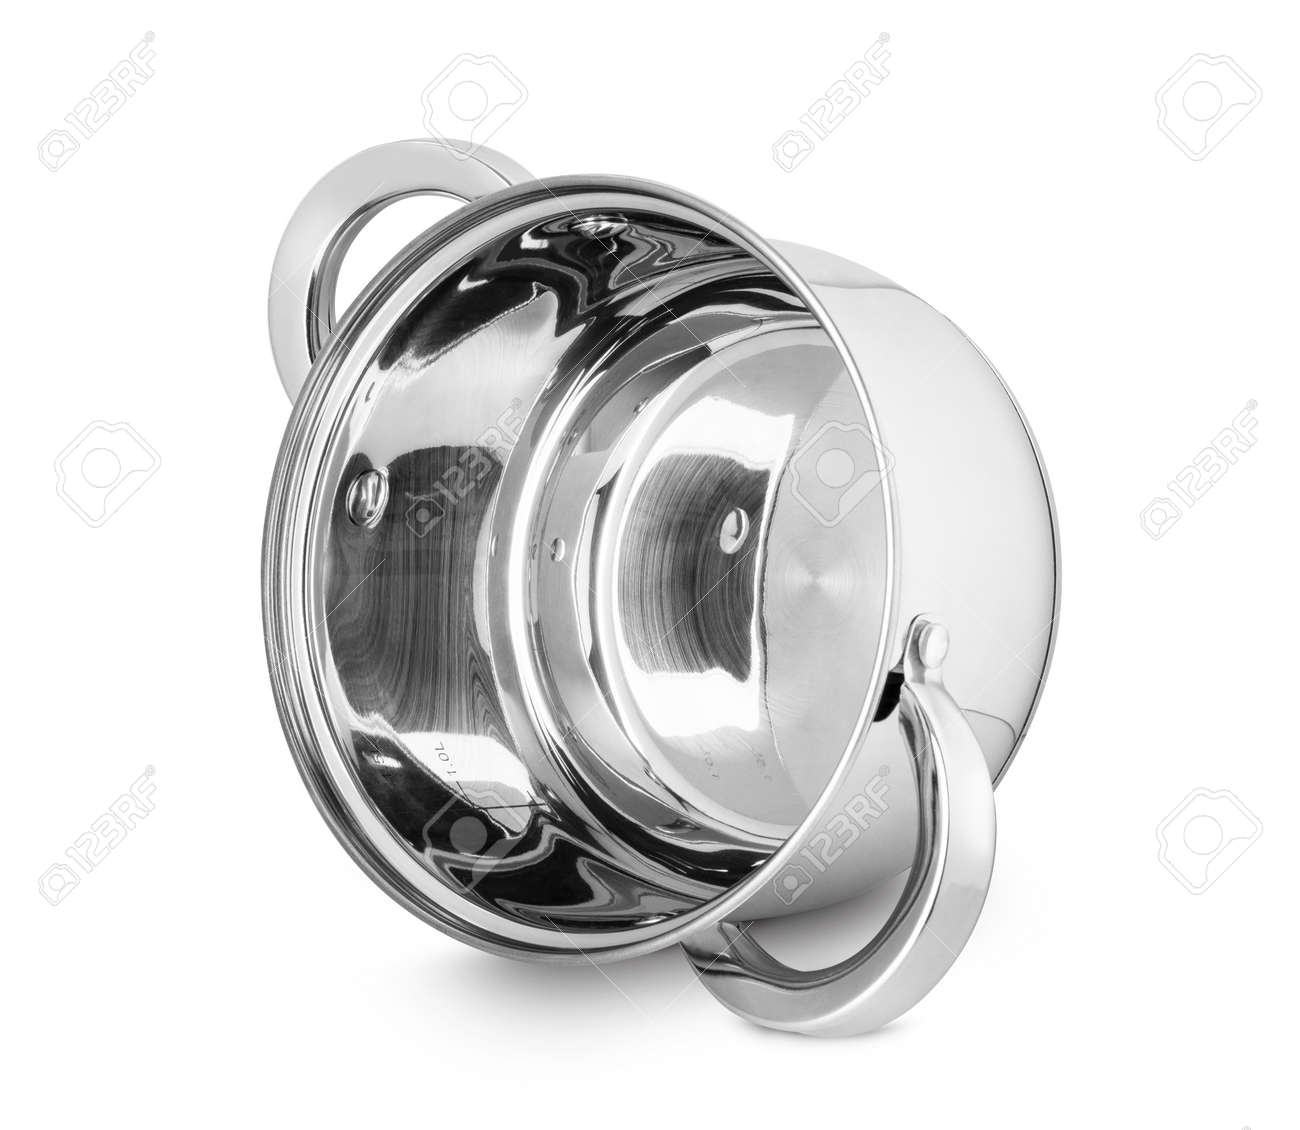 Stainless steel pot isolated on a white background. With clipping path - 170242747